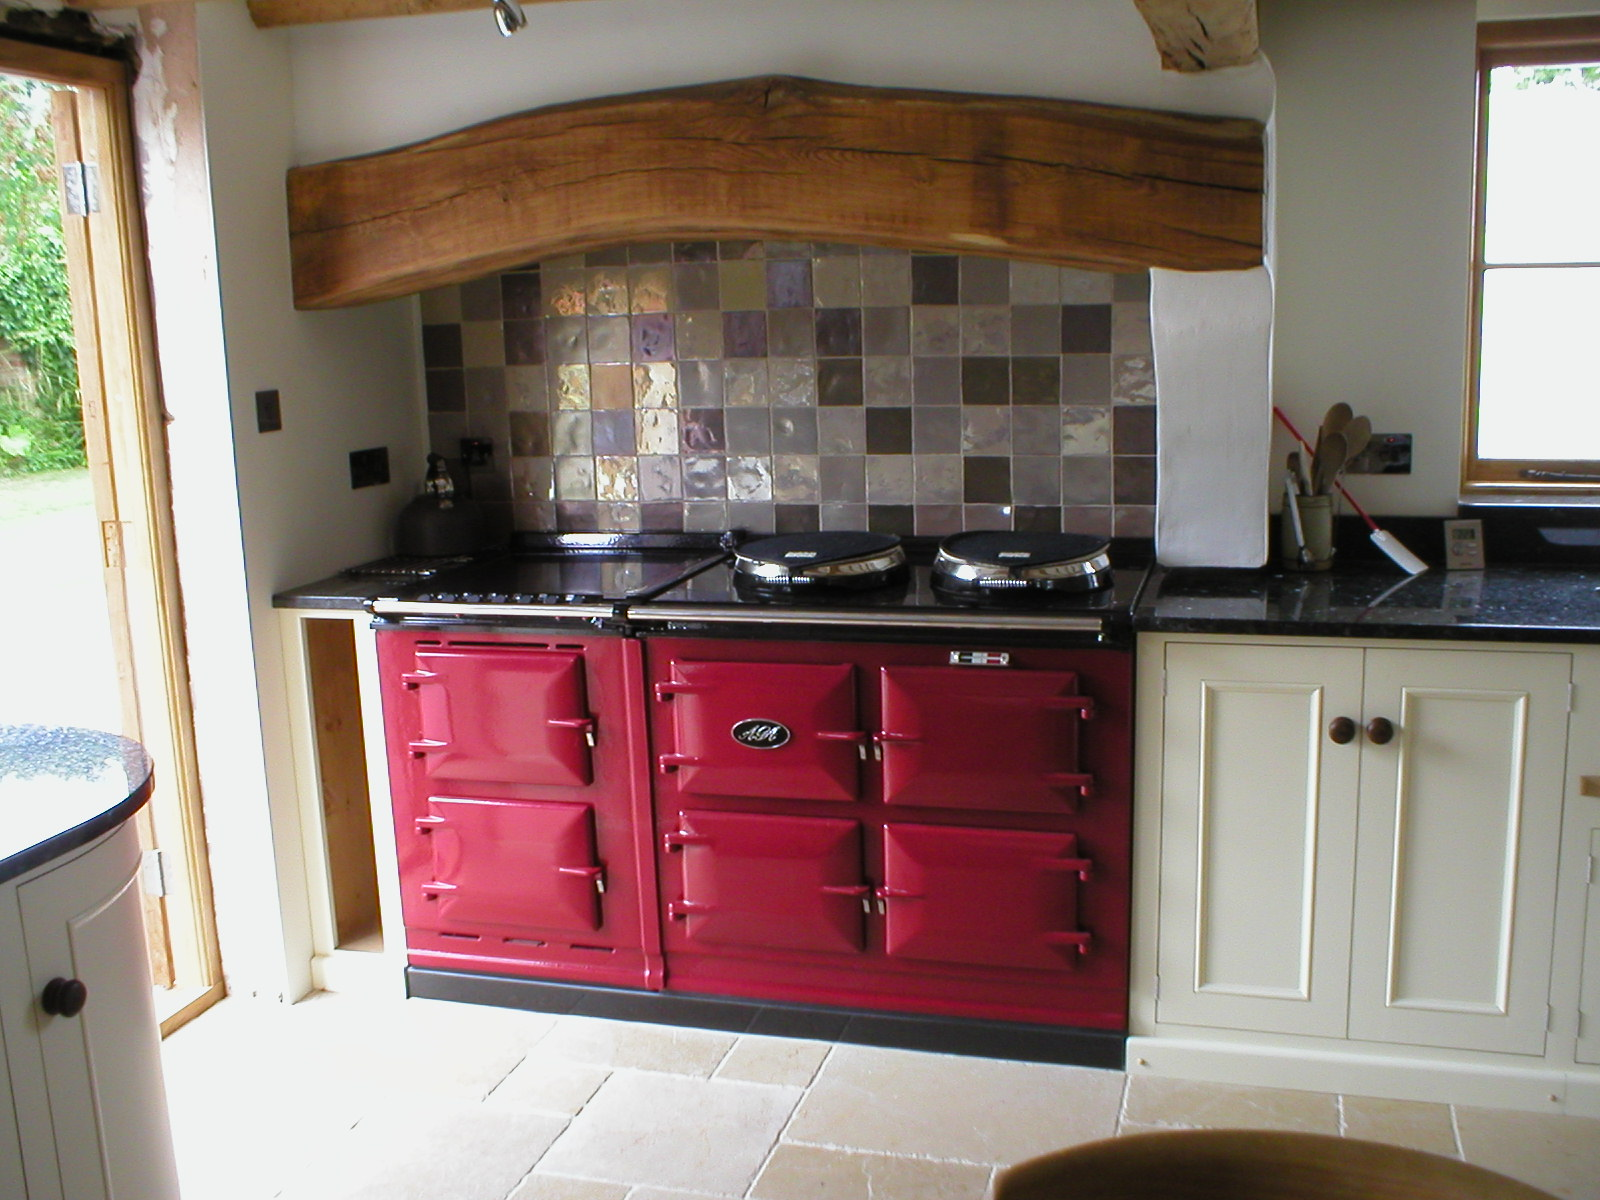 Bespoke kitchen units cabinets furniture handmade in kent - Cucine aga prezzi ...